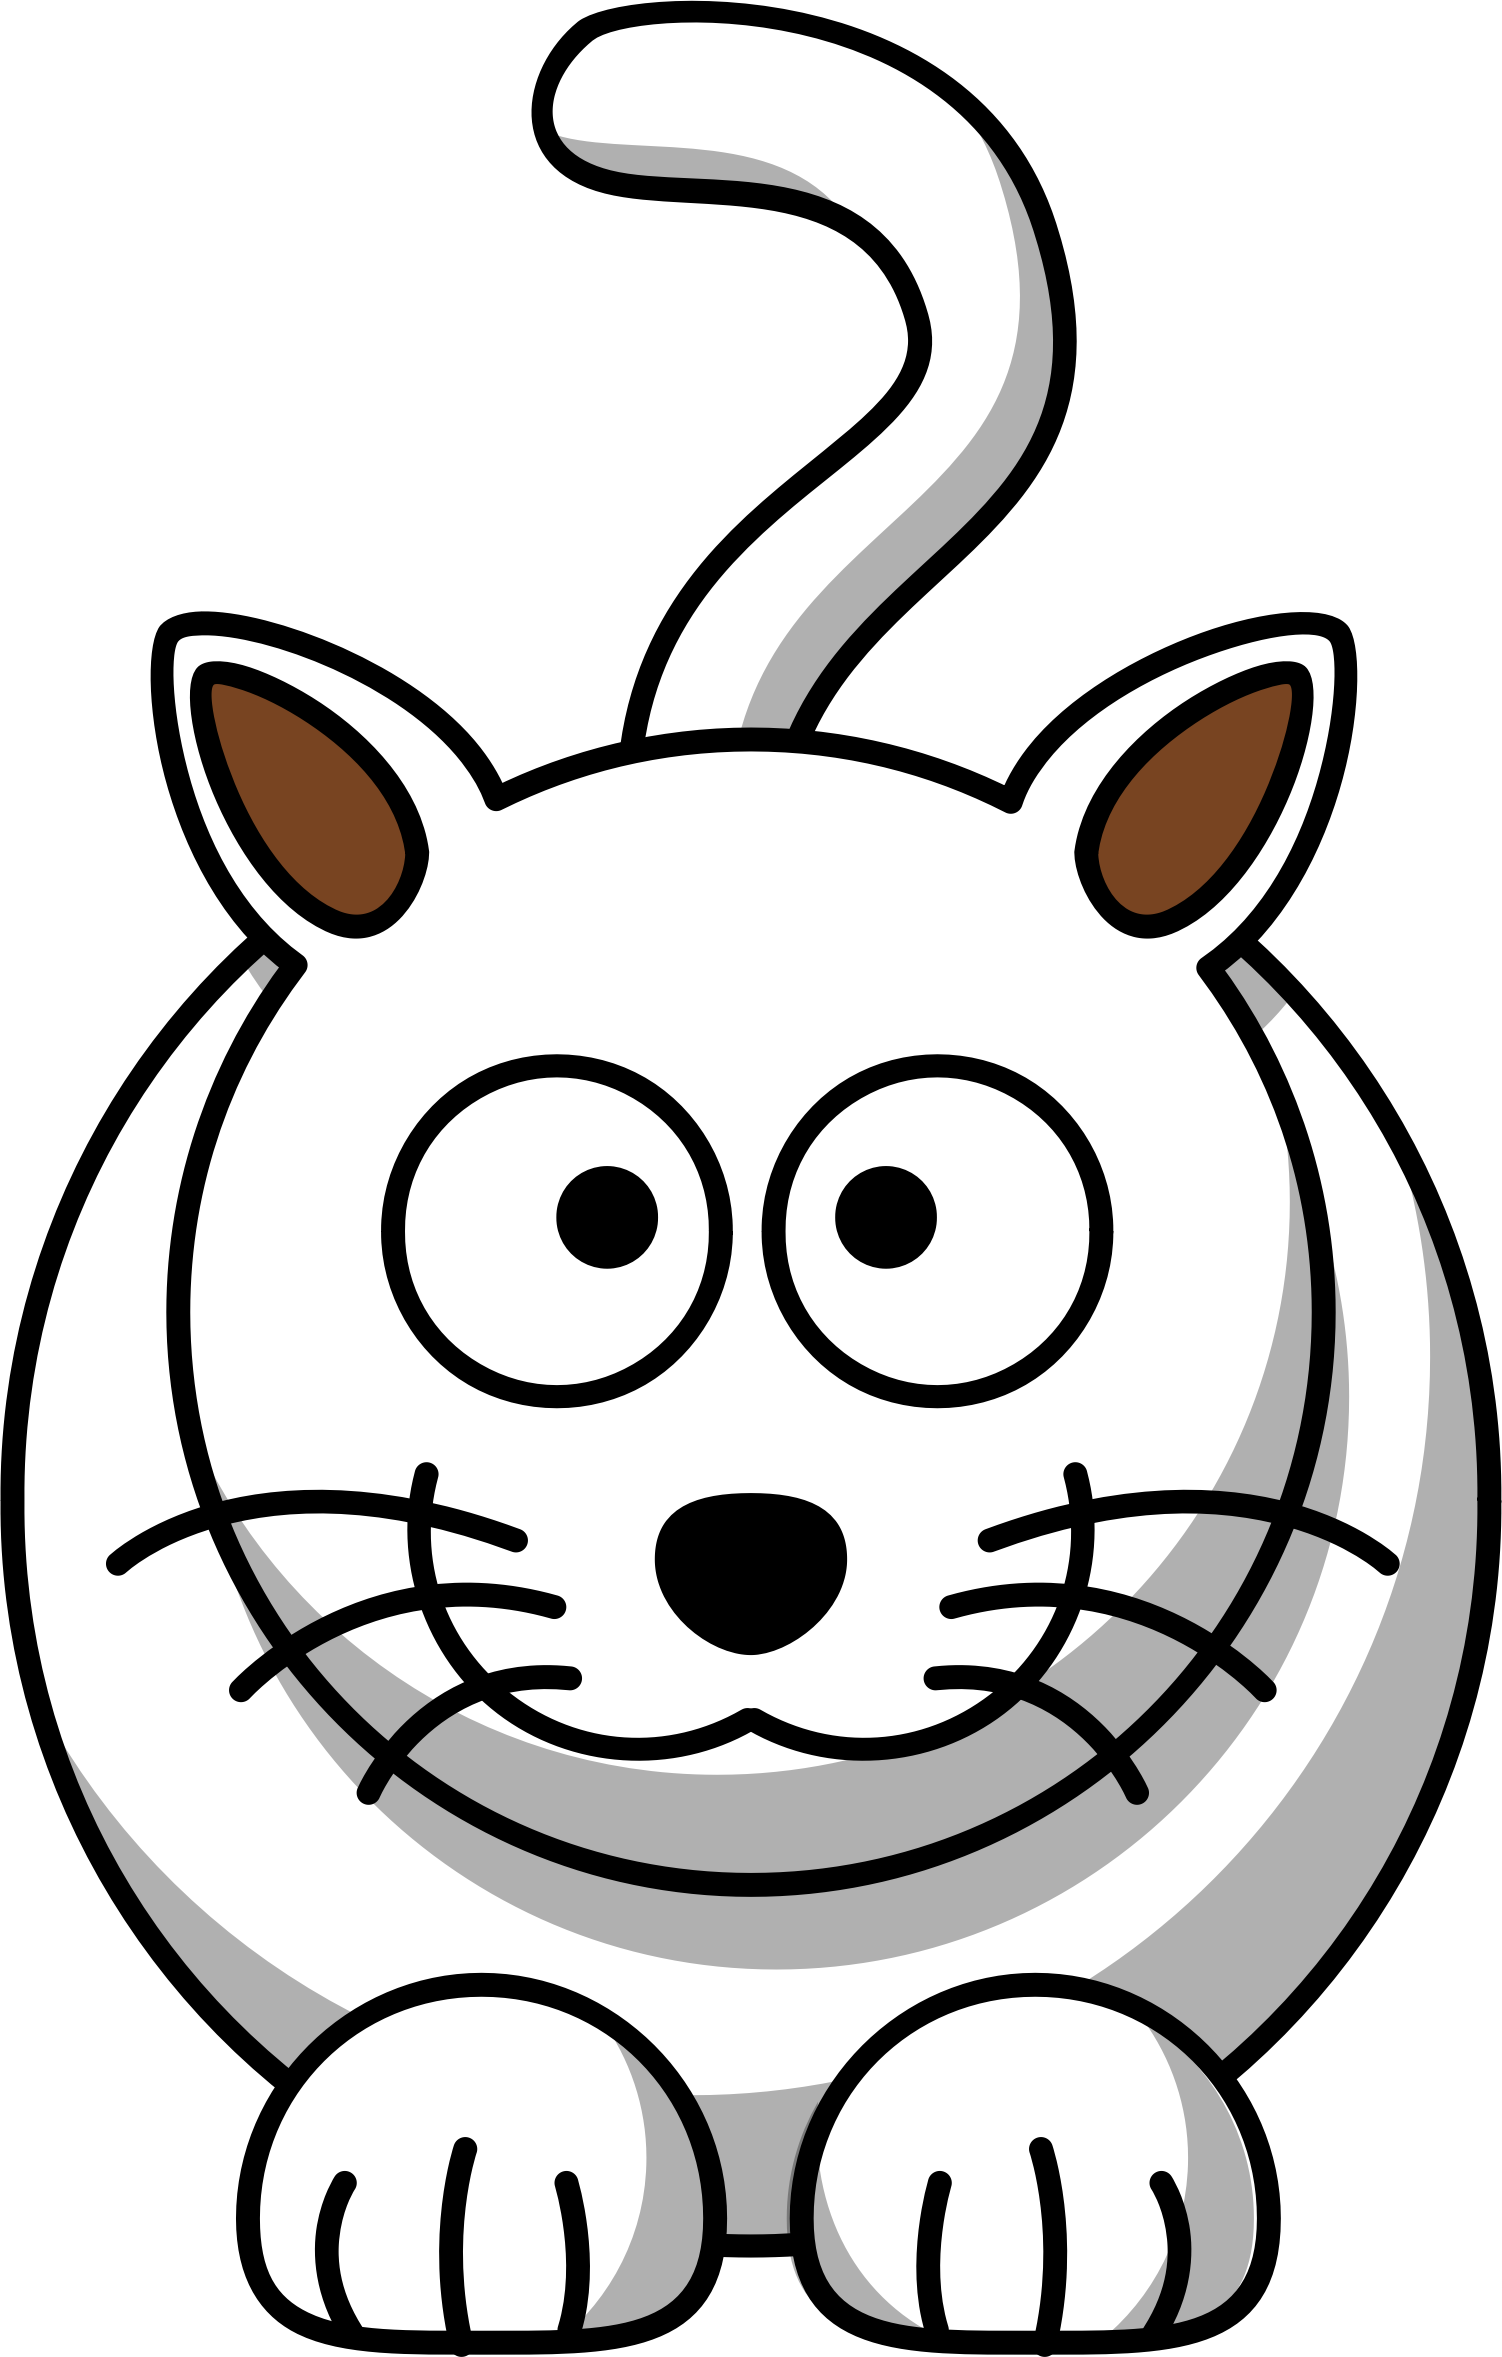 Cat head black and white clipart vector free stock Clipart - White cat vector free stock